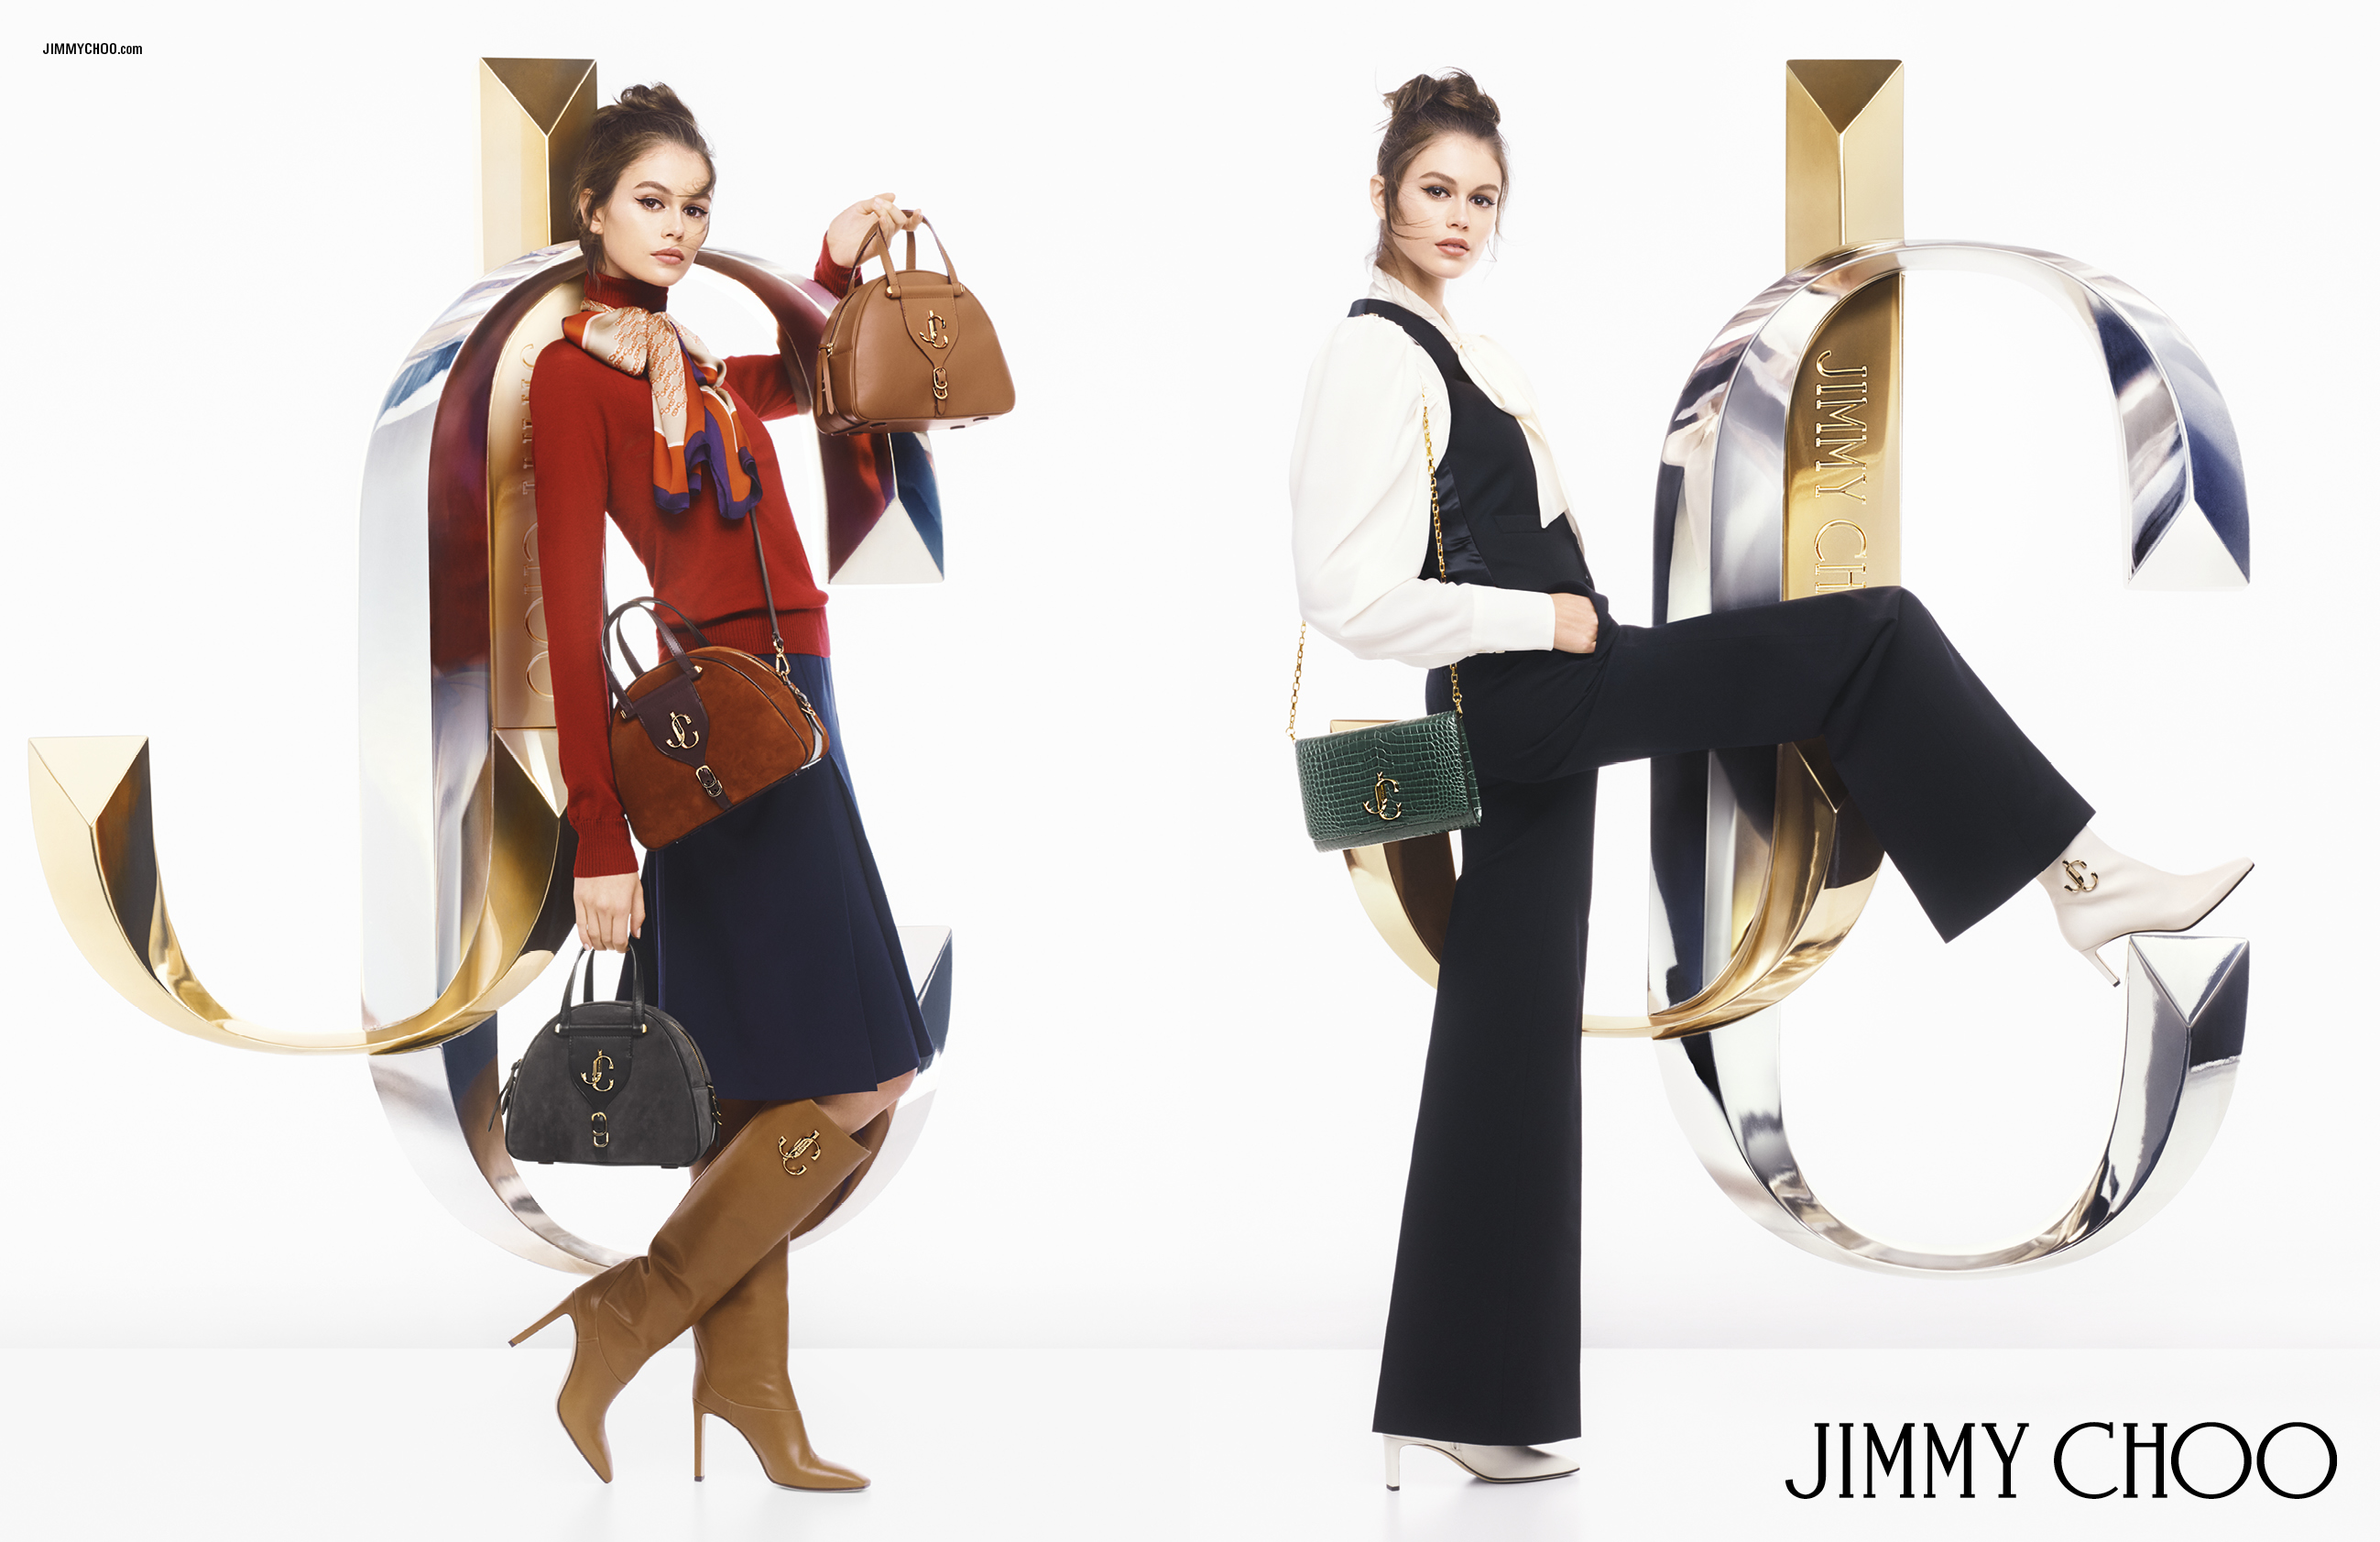 JIMMY CHOO UNVEILS AUTUMN/WINTER JC CAMPAIGN STARRING KAIA GERBER